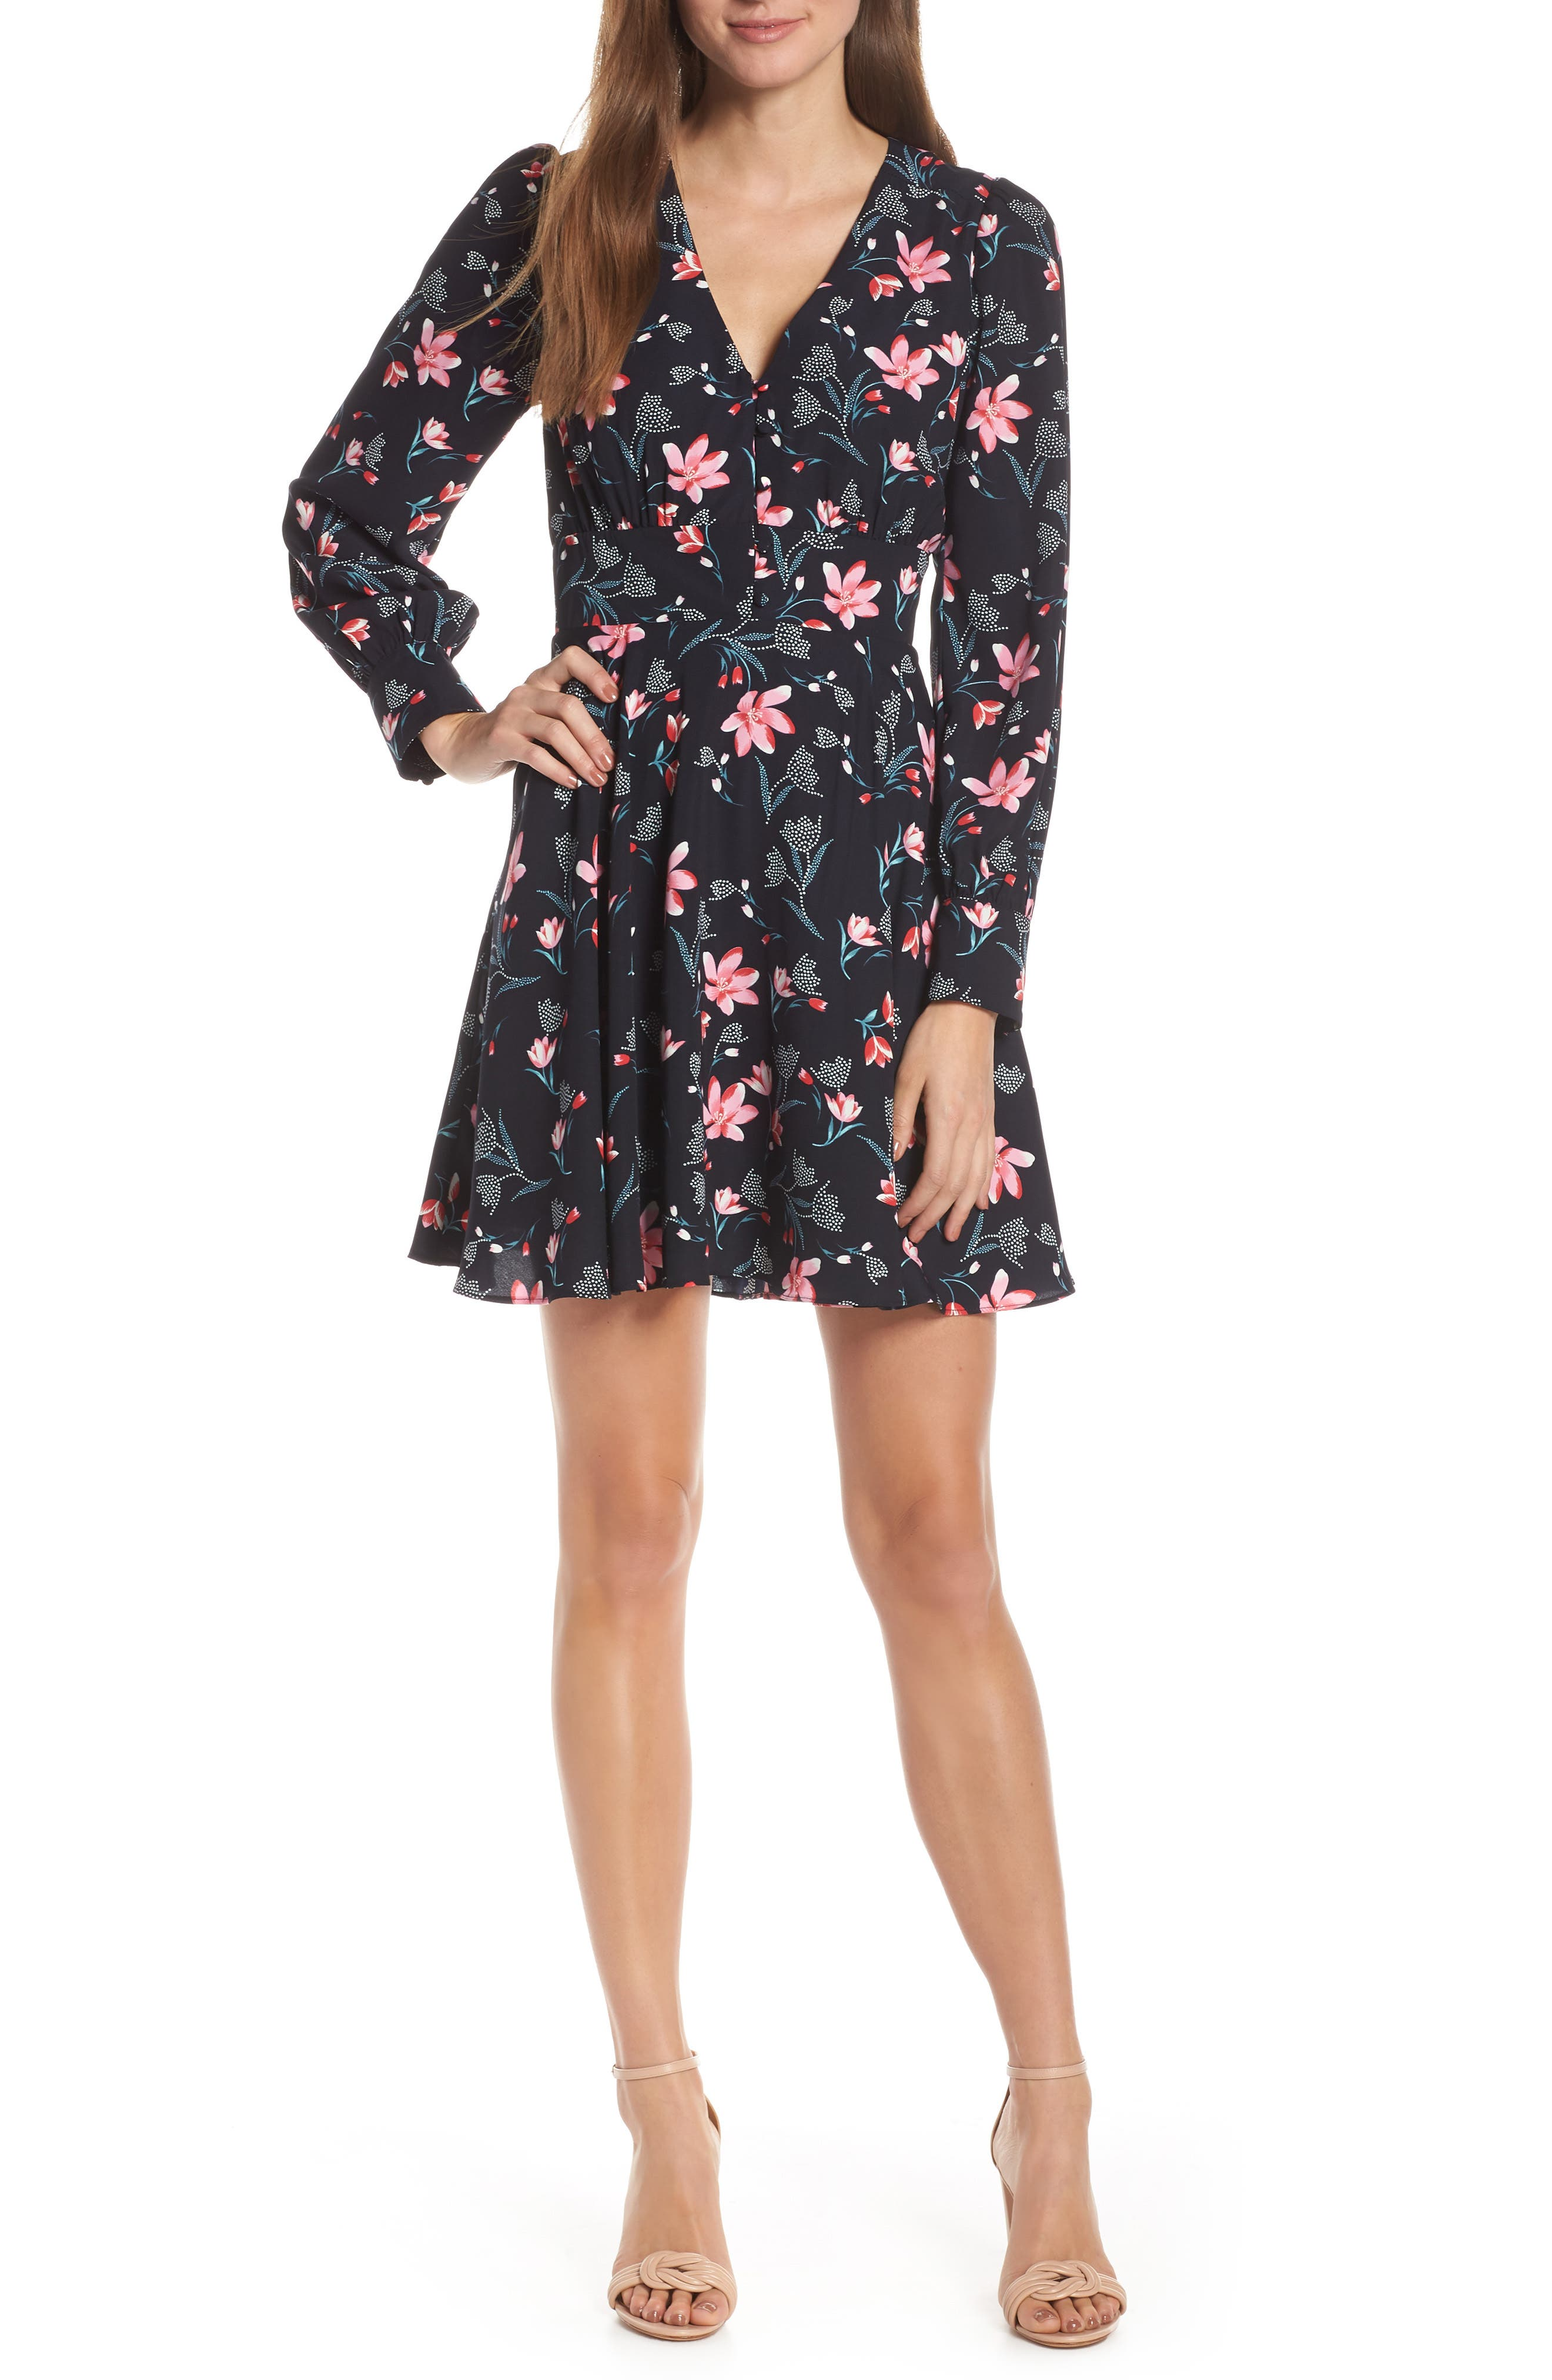 0af7eeb2b4e Adelyn Rae Julie Button Detail Fit   Flare Dress